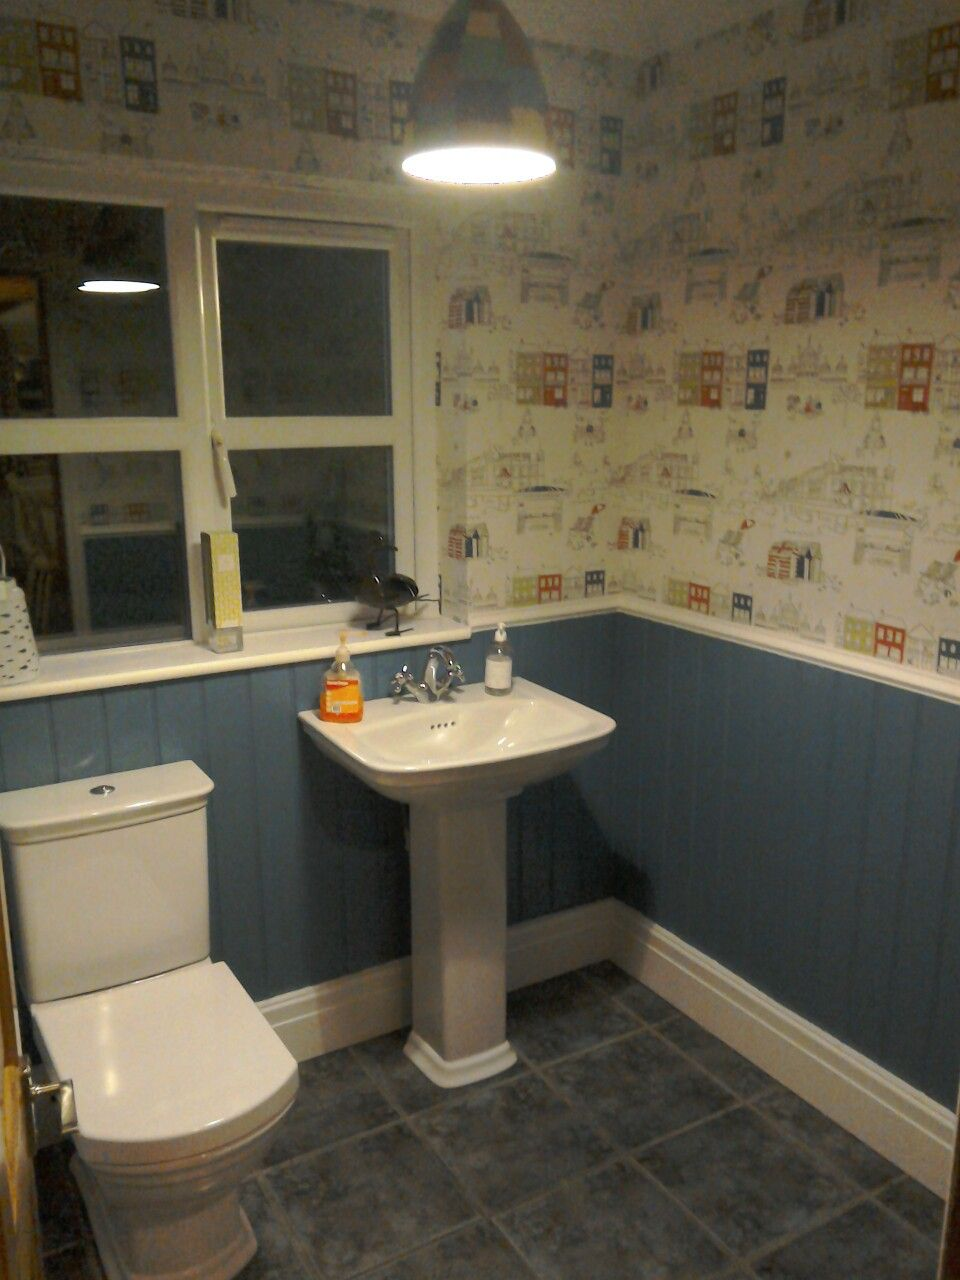 Brighton Wallpaper From B&qjust Need To Fit The Roller Blind At Gorgeous B&q Bathroom Design Design Ideas